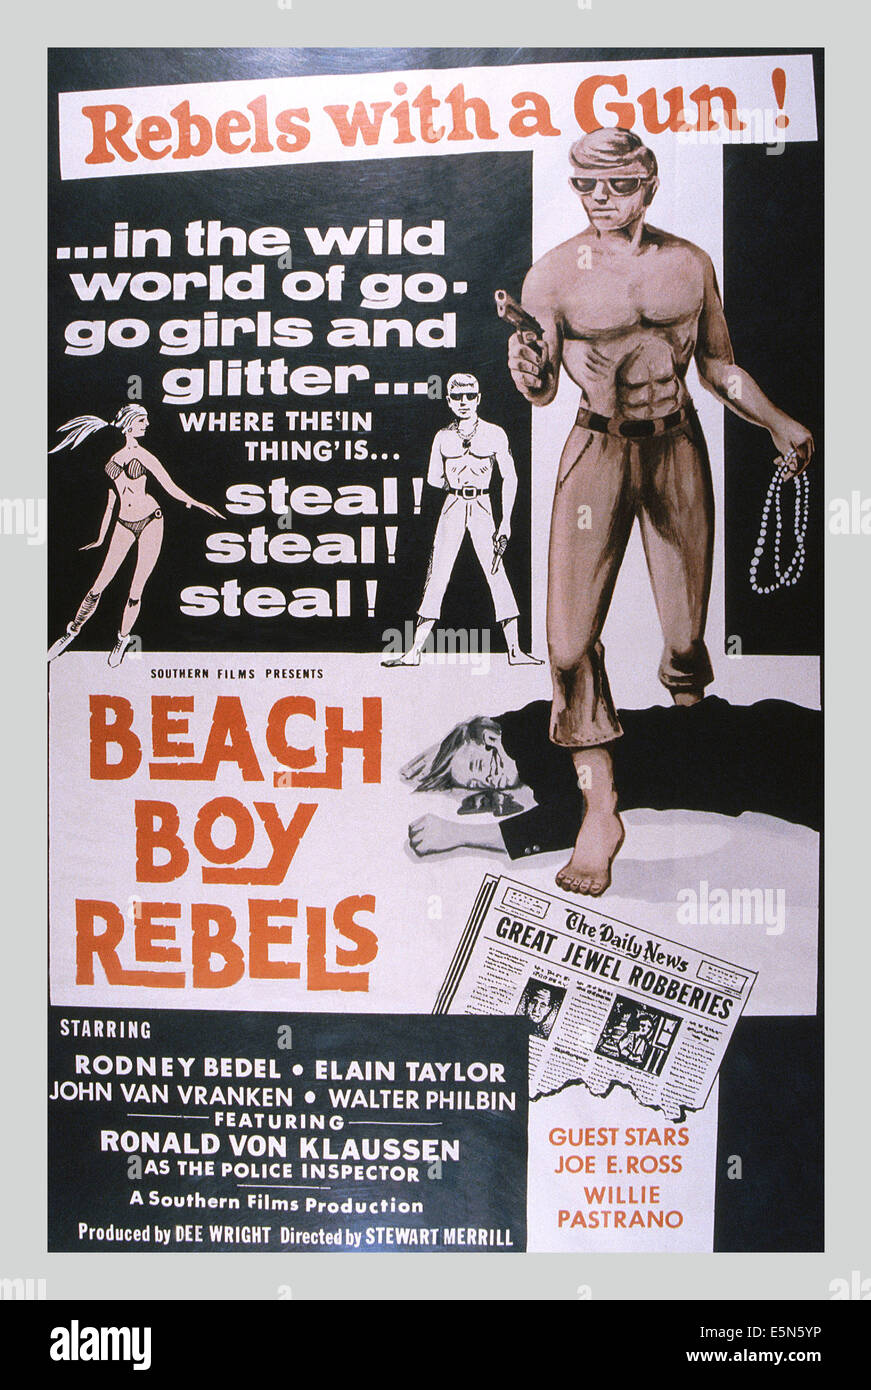 BEACH BOY REBELS, Rodney Bedel, ca. 1970 - Stock Image